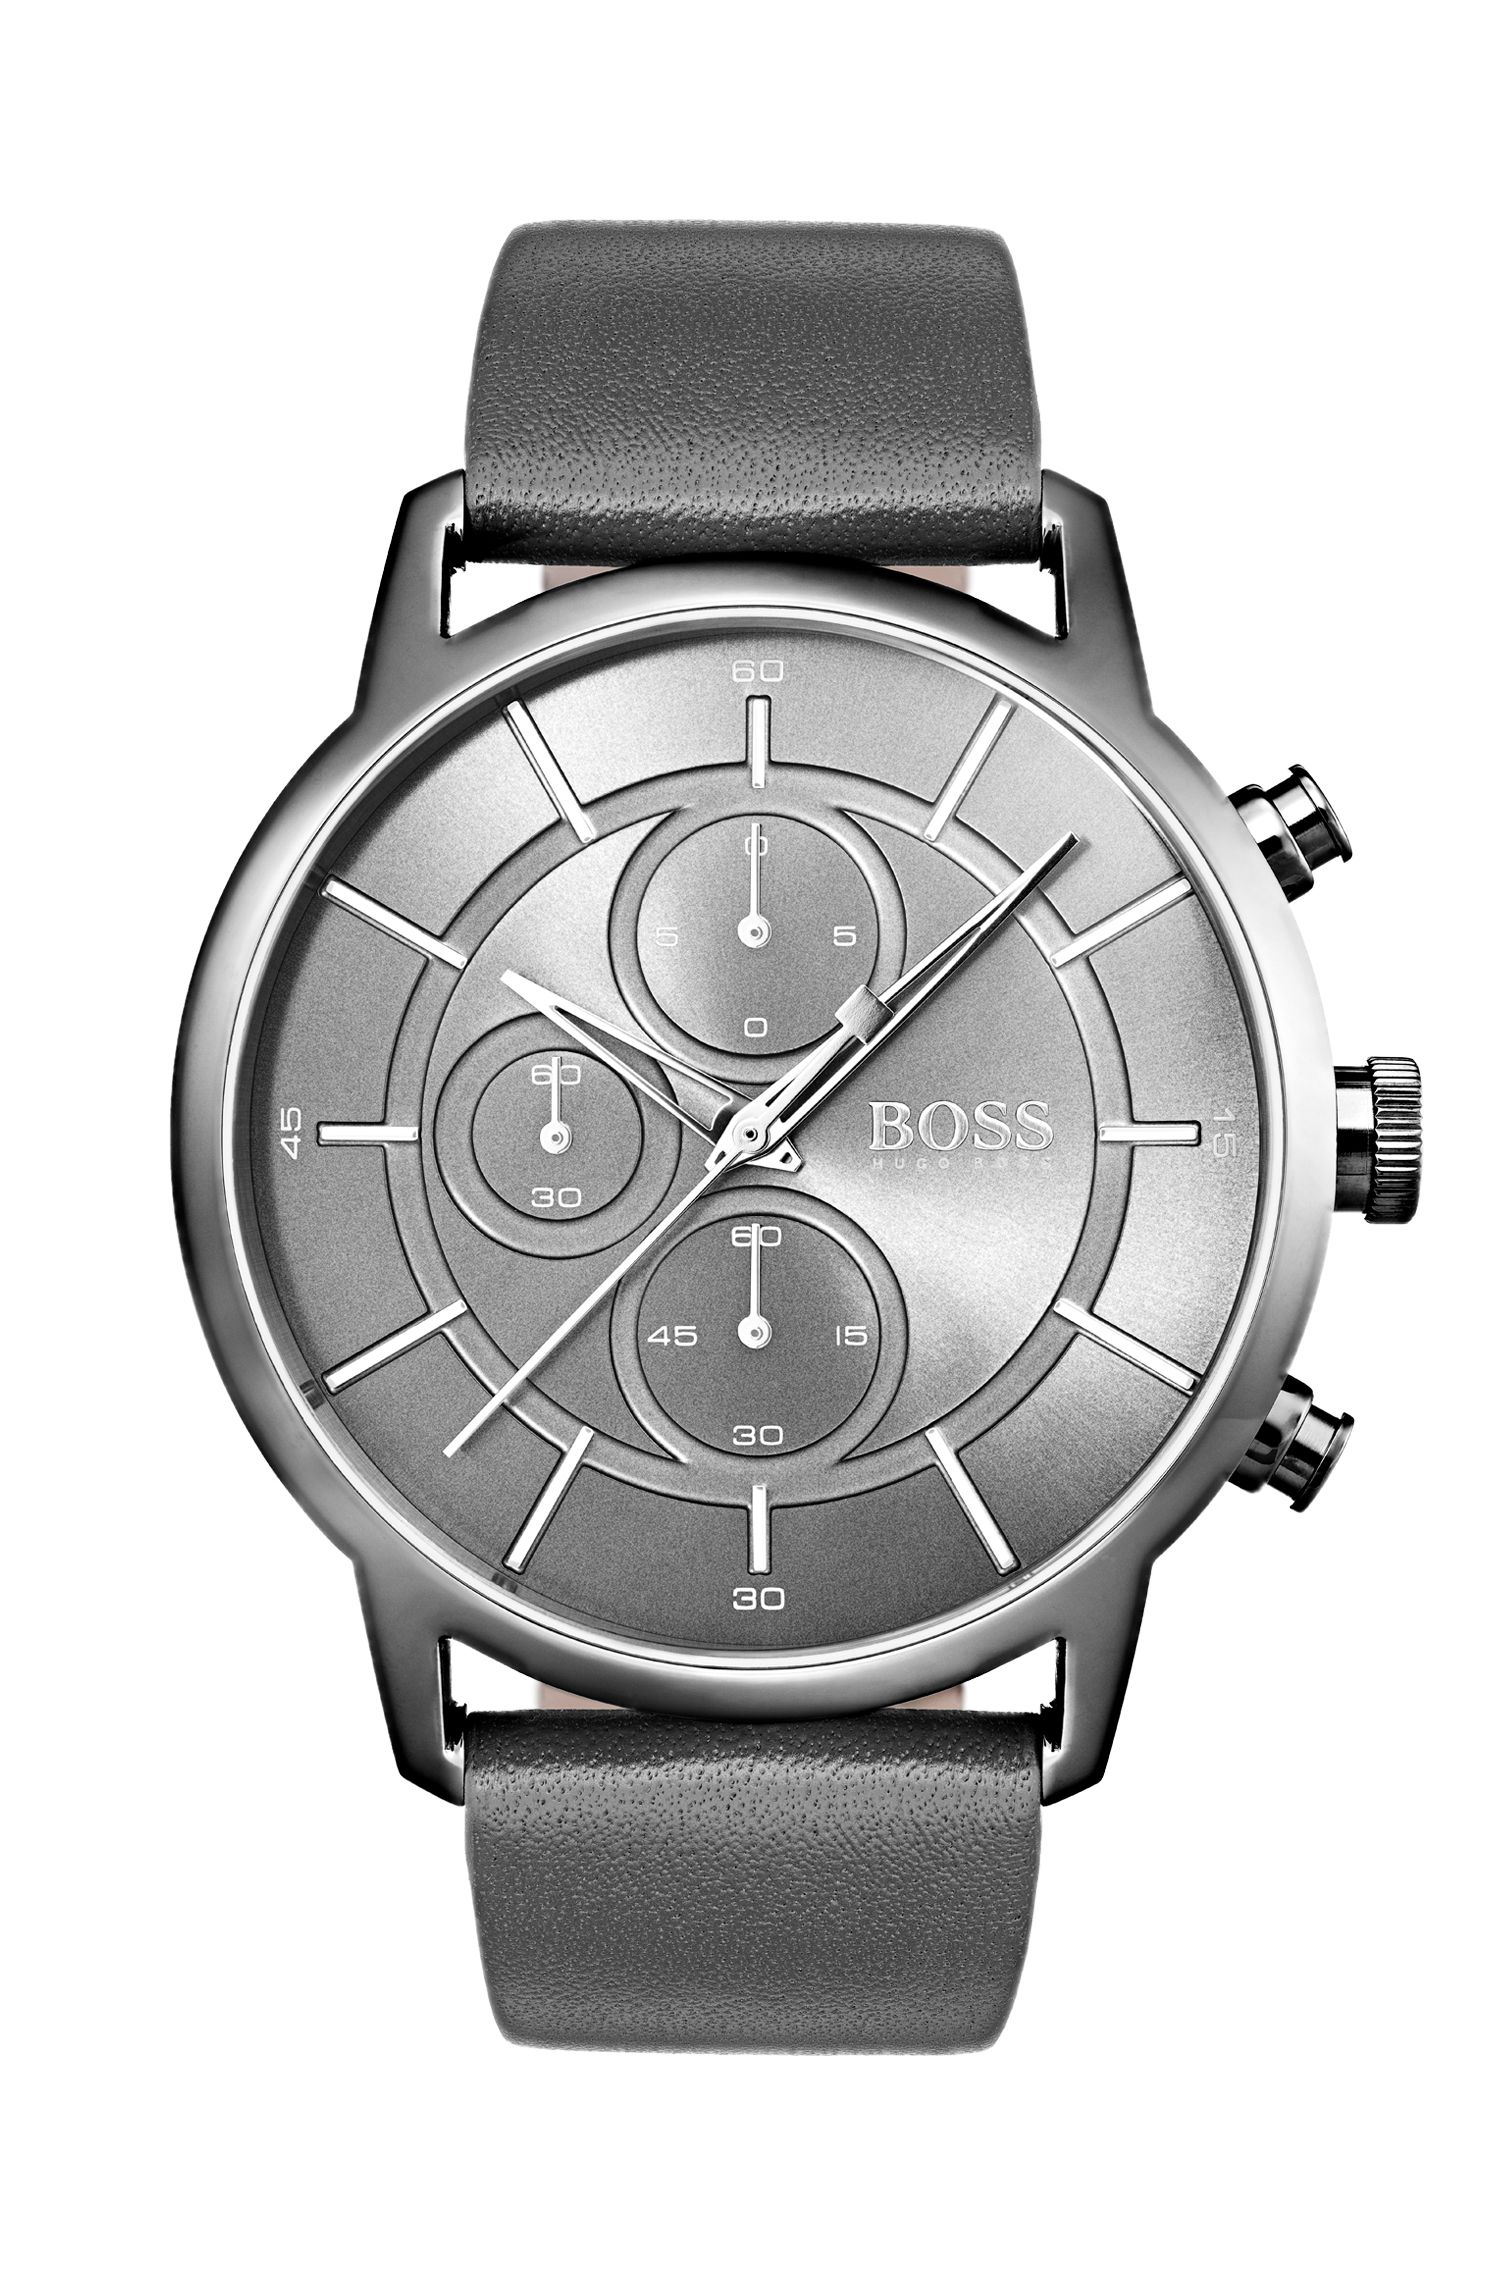 Bauhaus-inspired watch with grey leather strap